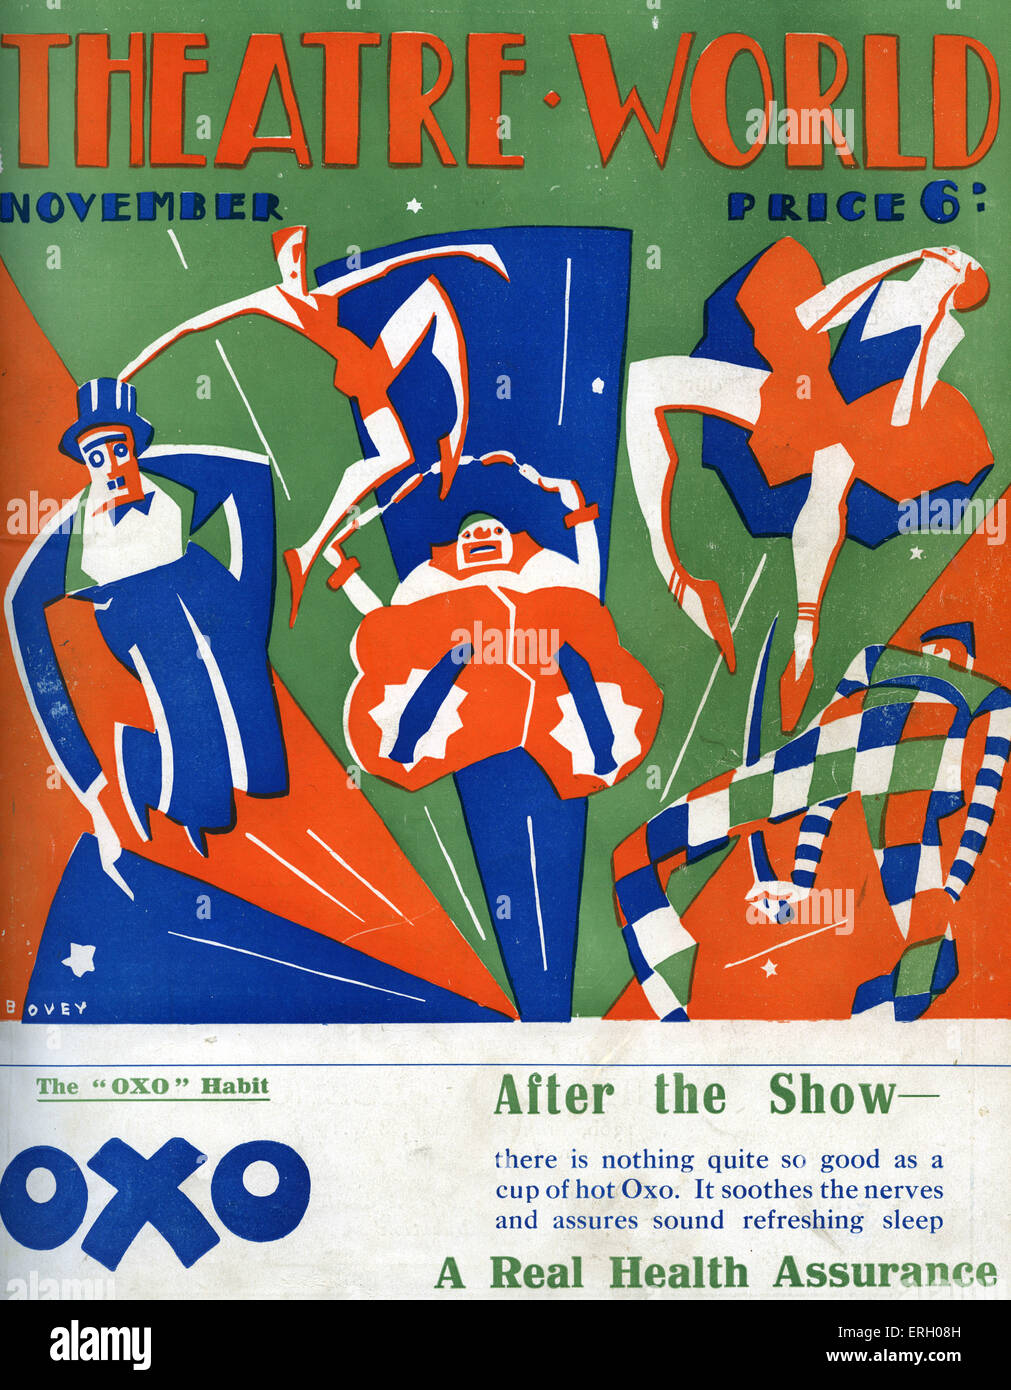 Theatre World cover November 1926. Graphics by Bovey. Circus performers, clowns, trapeze artist, harlequin, tightrope - Stock Image